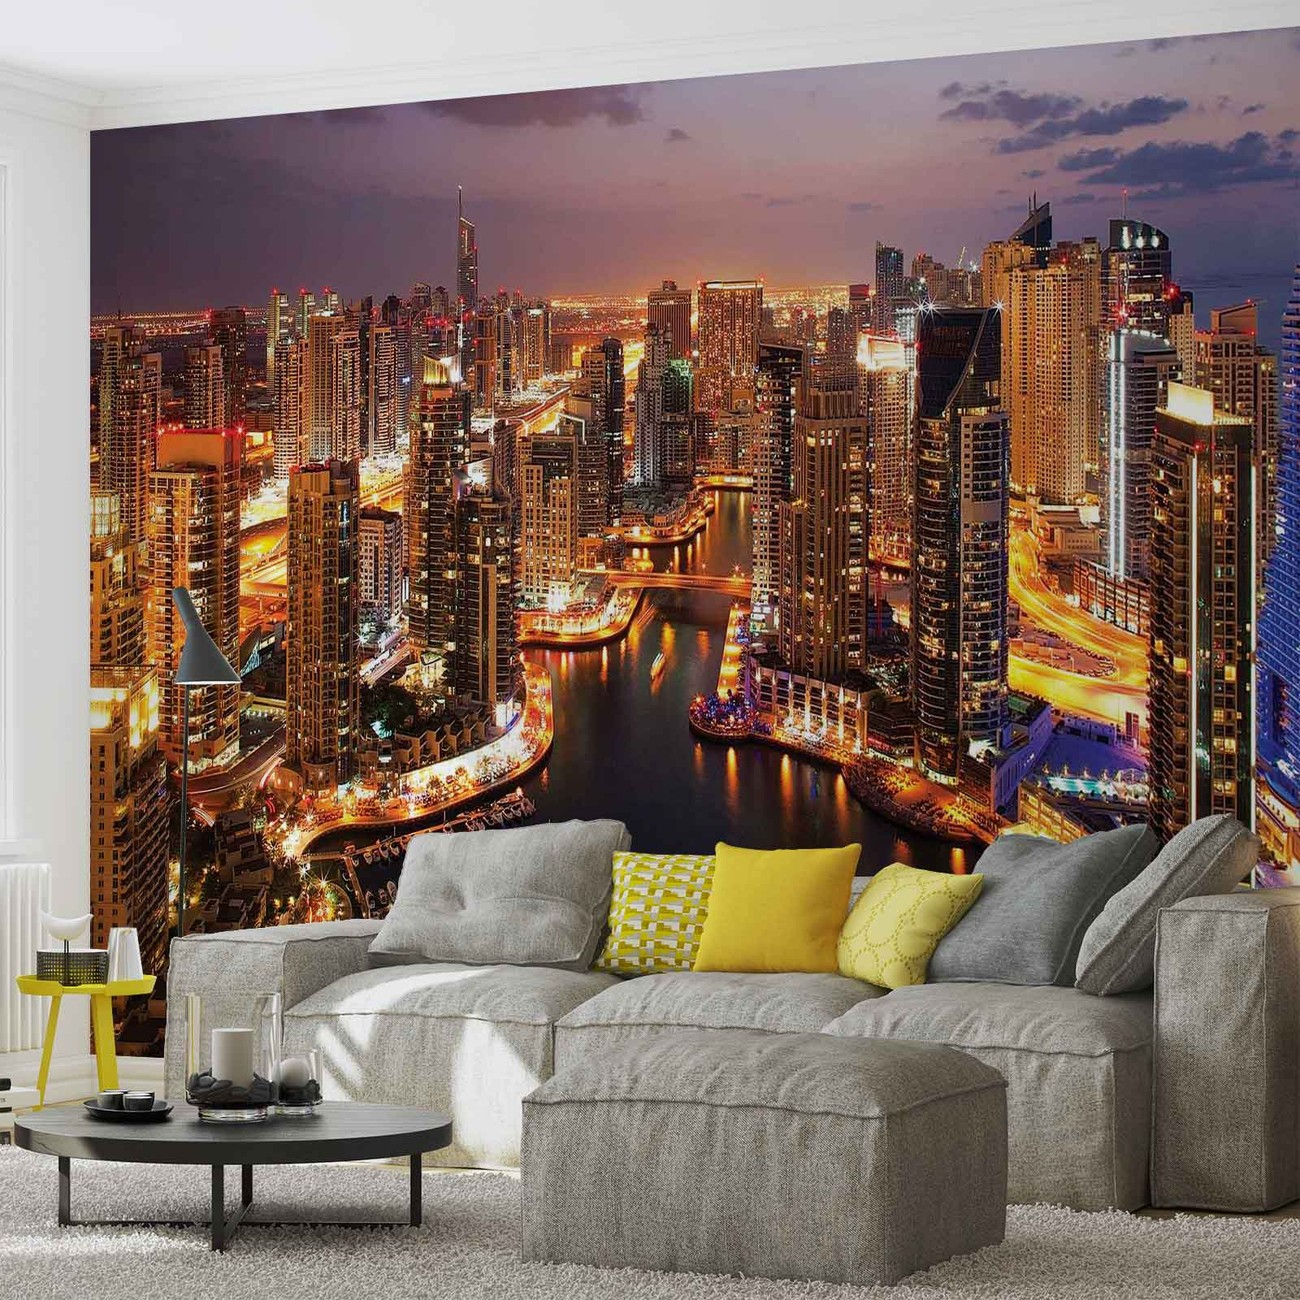 City dubai marina skyline wall paper mural buy at for Cityscape murals photo wall mural